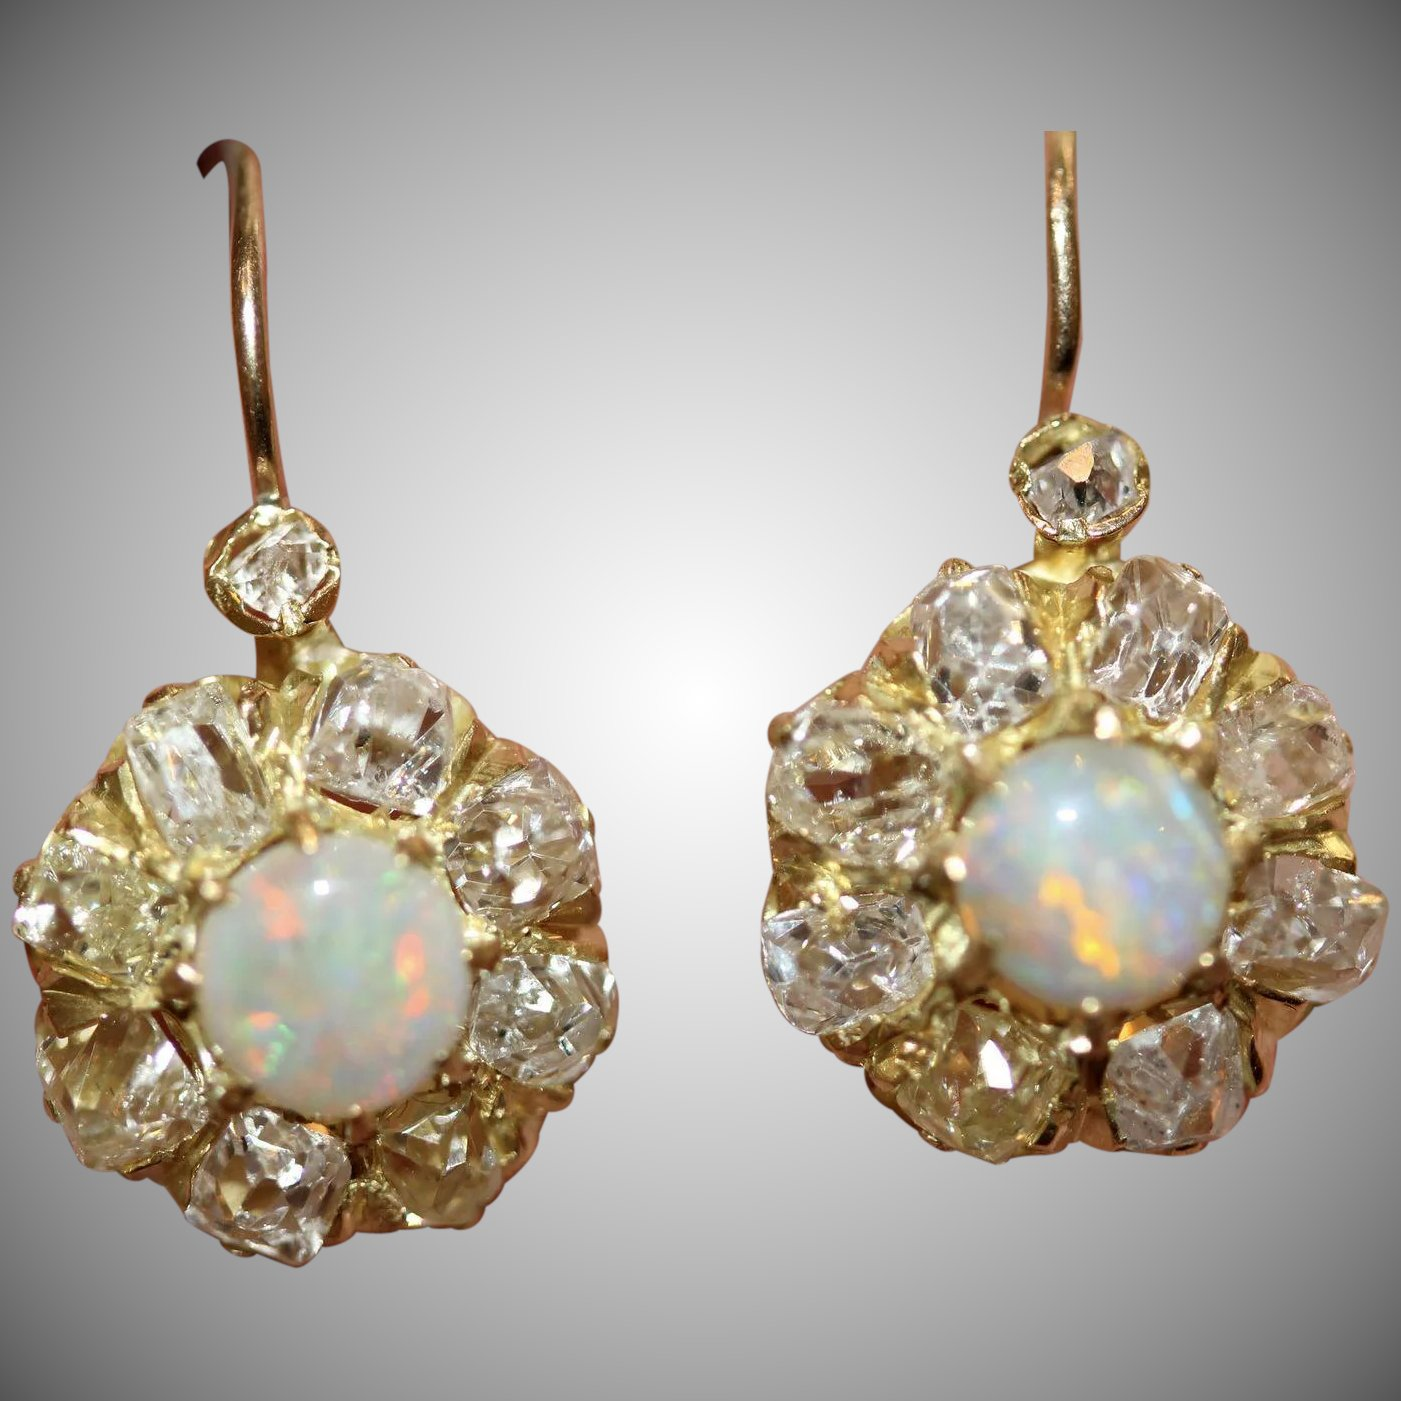 cluster august jewelry muehling moonstone insp designers ted earrings gold grey bug white shop